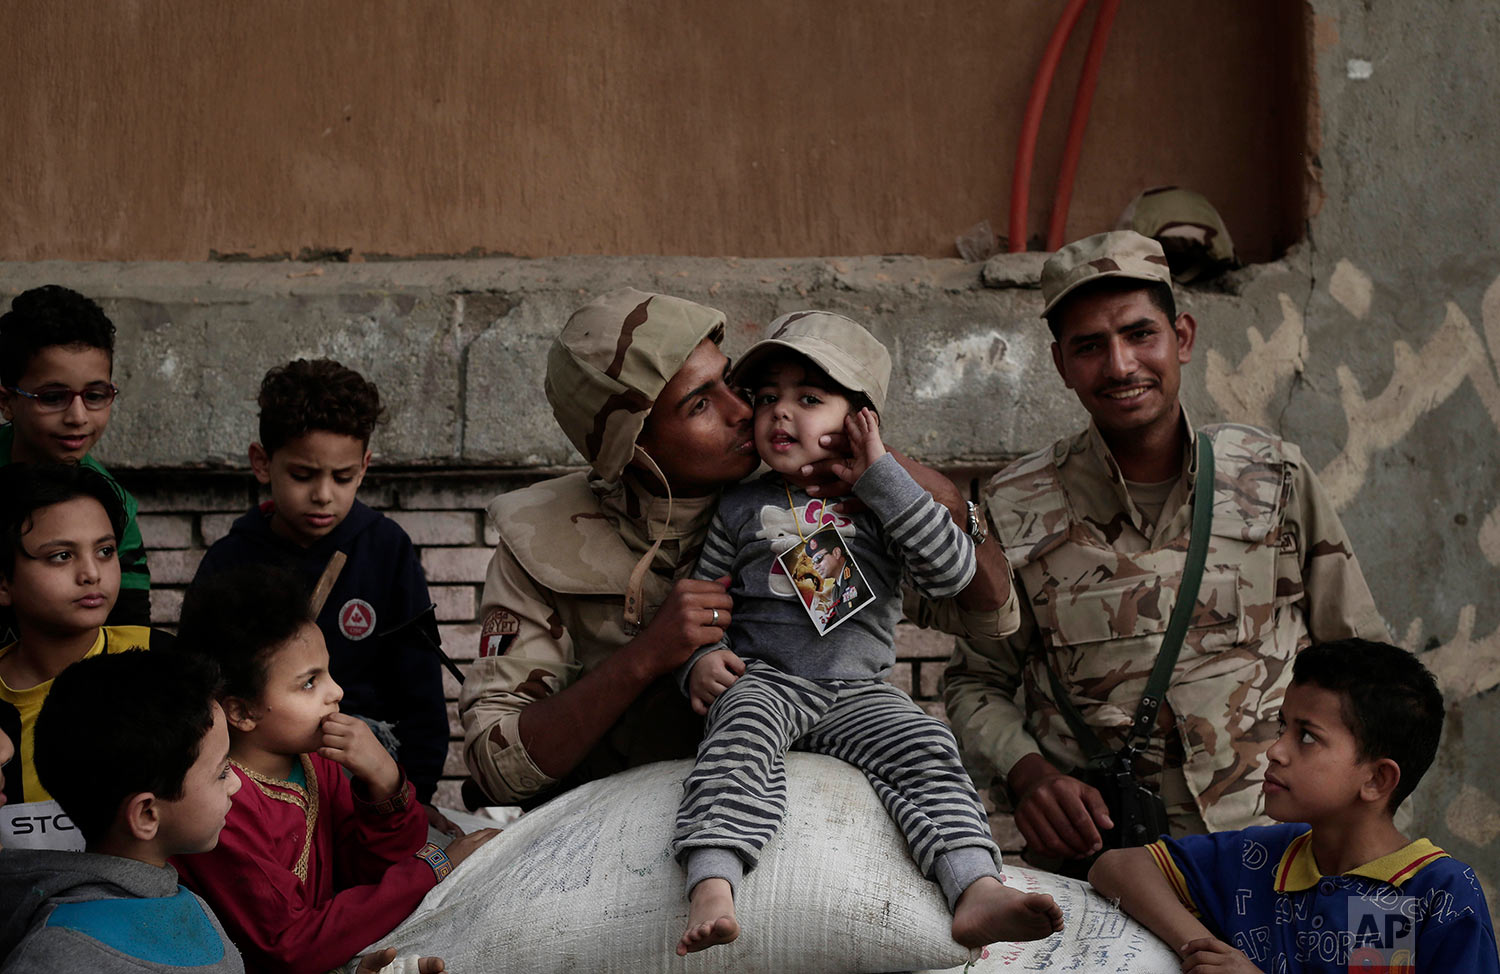 A military solider guarding a polling station kisses a girl during the first day of voting in the presidential election in the village of Kerdasa, Giza, Egypt, Monday, March 26, 2018. Polls opened on Monday in Egypt's presidential election with the outcome — a second, four-year term for President Abdel-Fattah el-Sissi — a foregone conclusion, in what is seen by critics as a signal of the country's return to the authoritarian rule that prevailed since the 1950s. (AP Photo/Nariman El-Mofty)